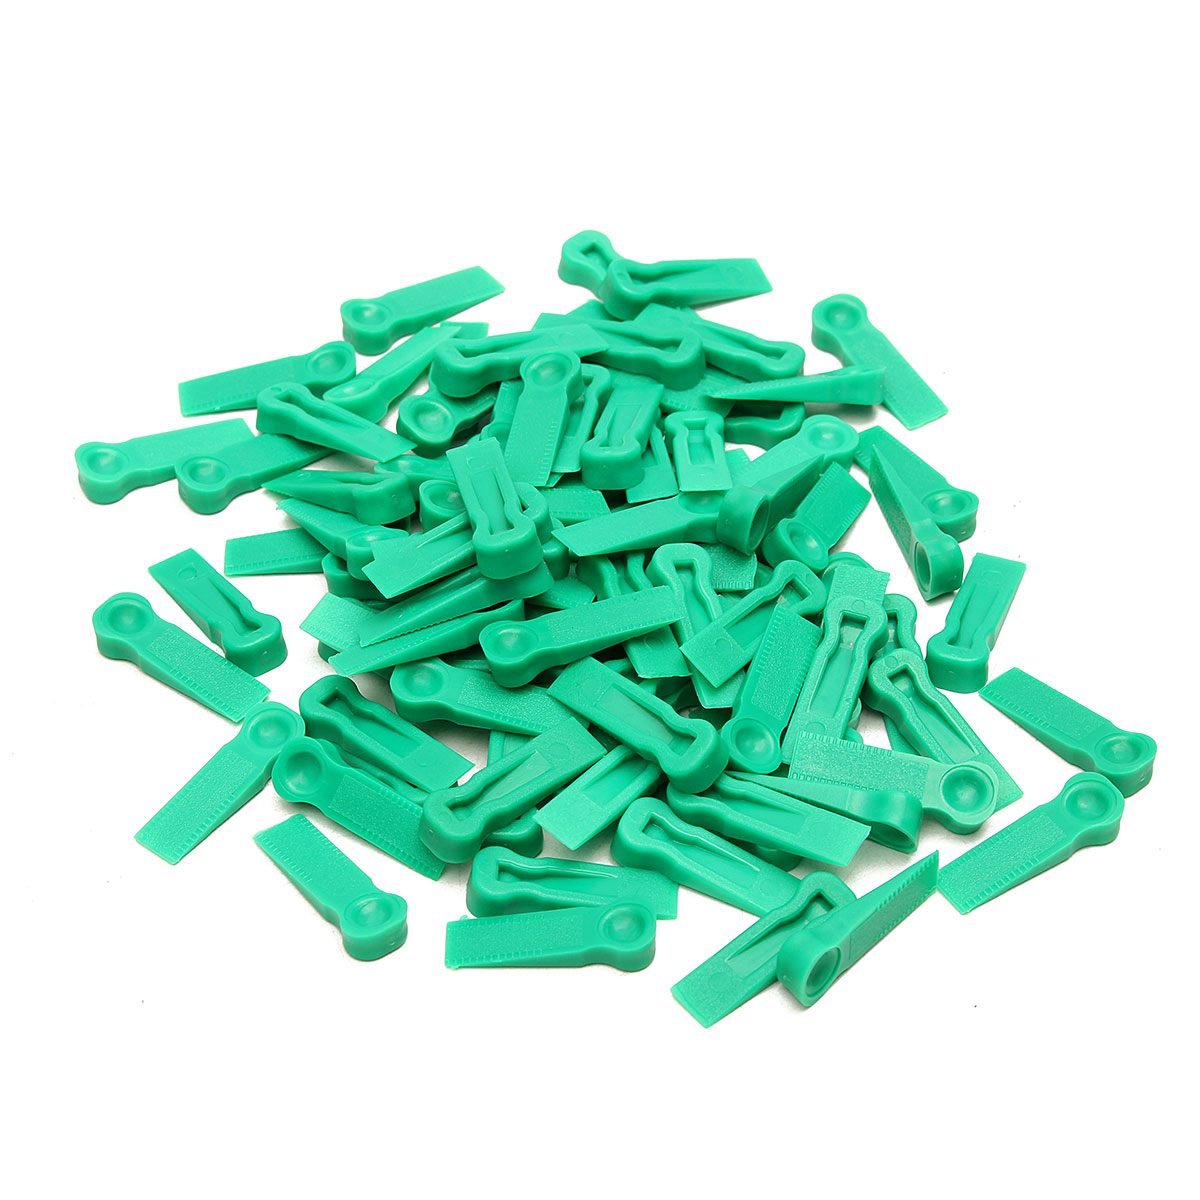 100pcs Wedges Floor Wall Tile Leveling System Tile Spacers Bulding Tool 6mm Green Ideal for variable spacing thyssen parts leveling sensor yg 39g1k door zone switch leveling photoelectric sensors